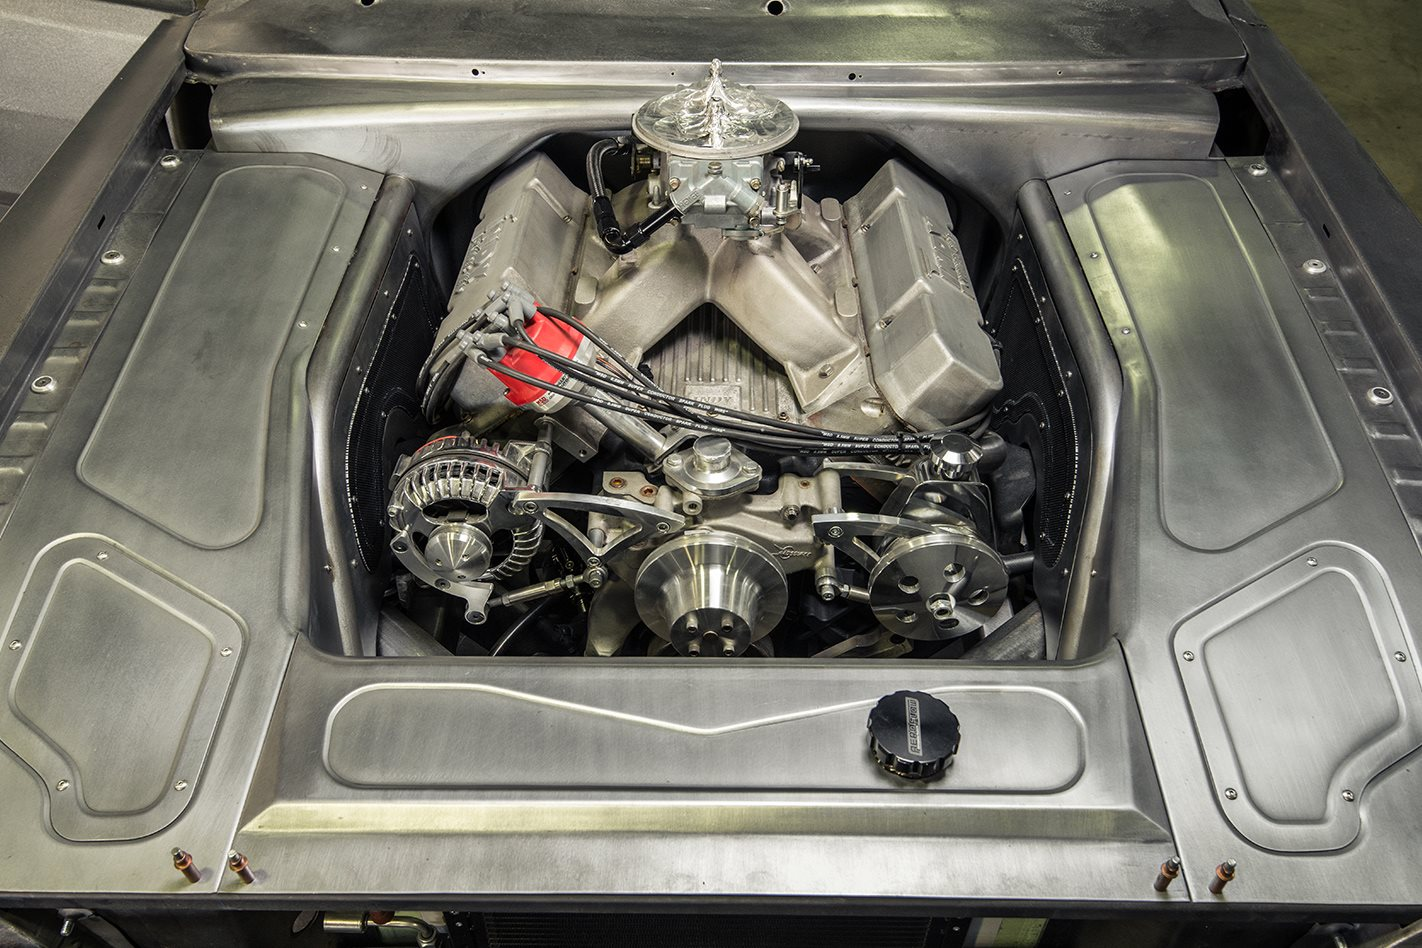 VG Valiant engine